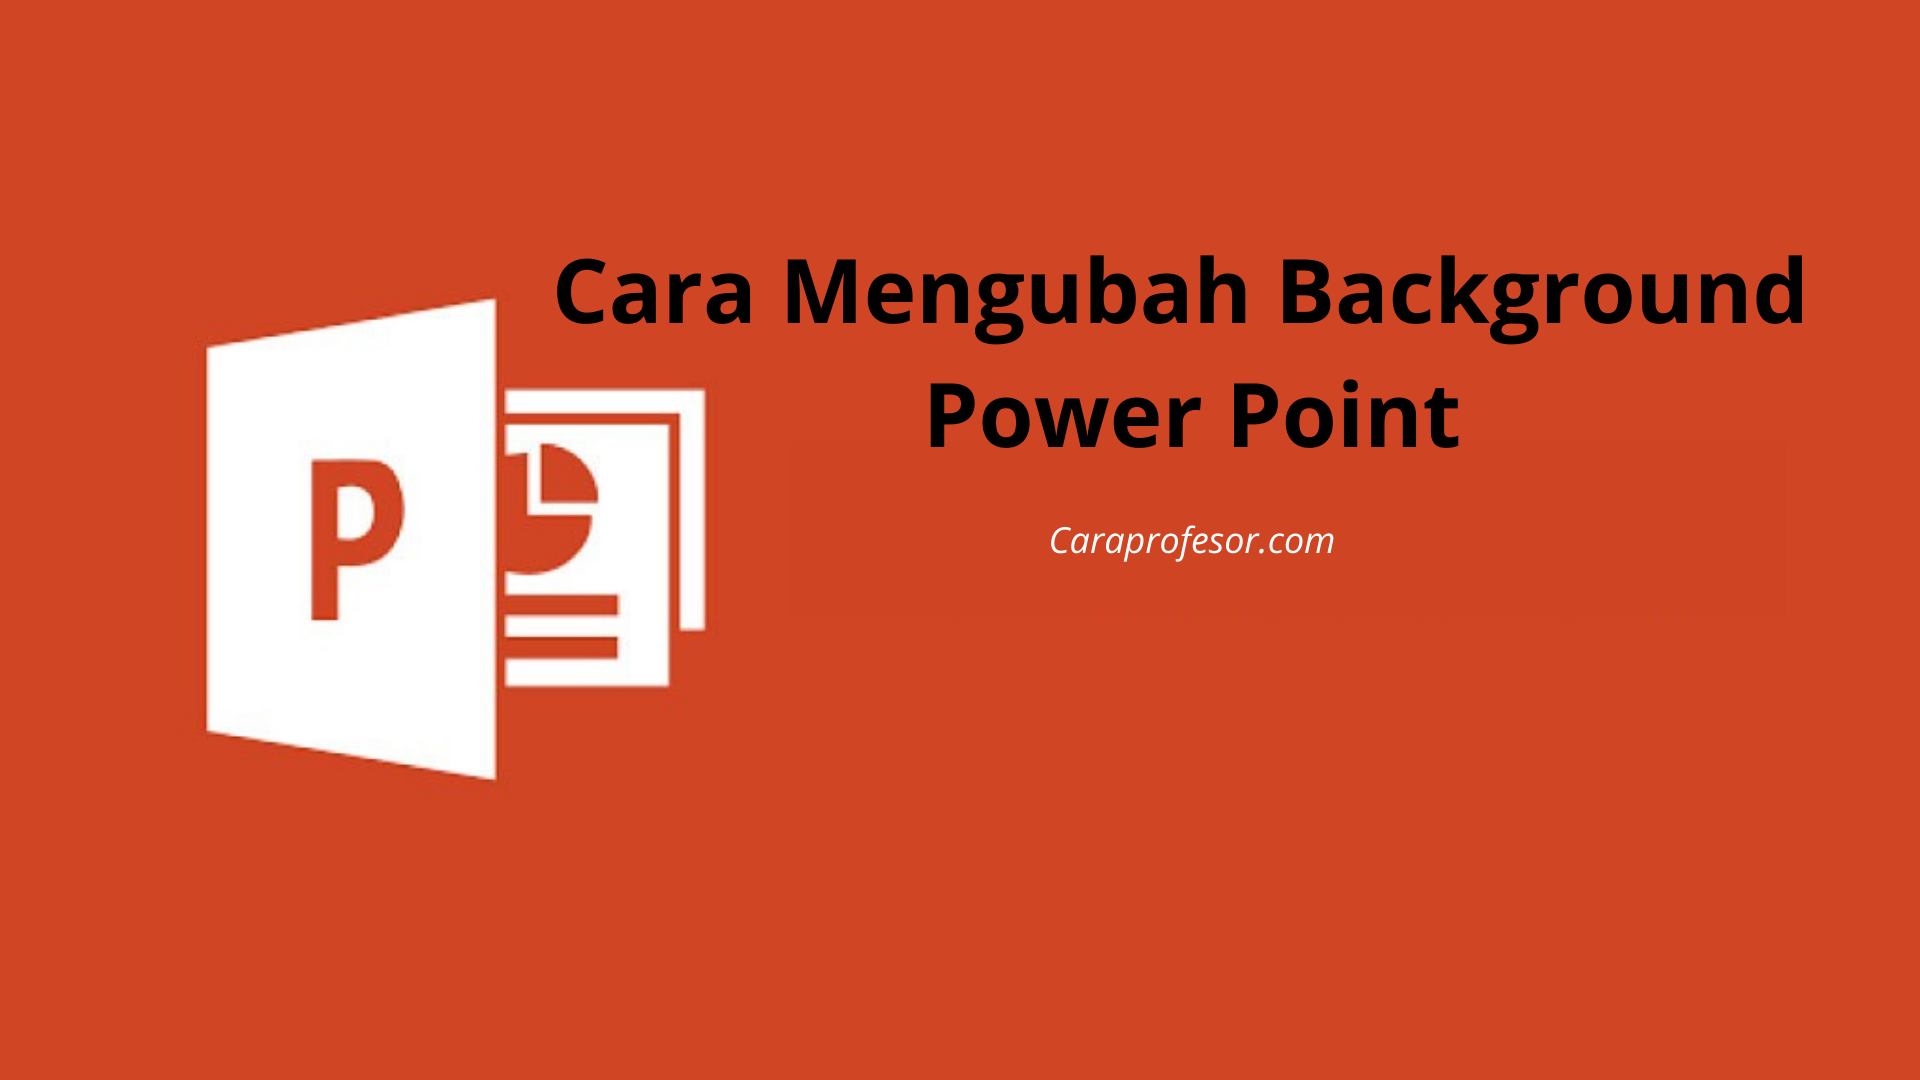 Cara Mengubah Background Power Point